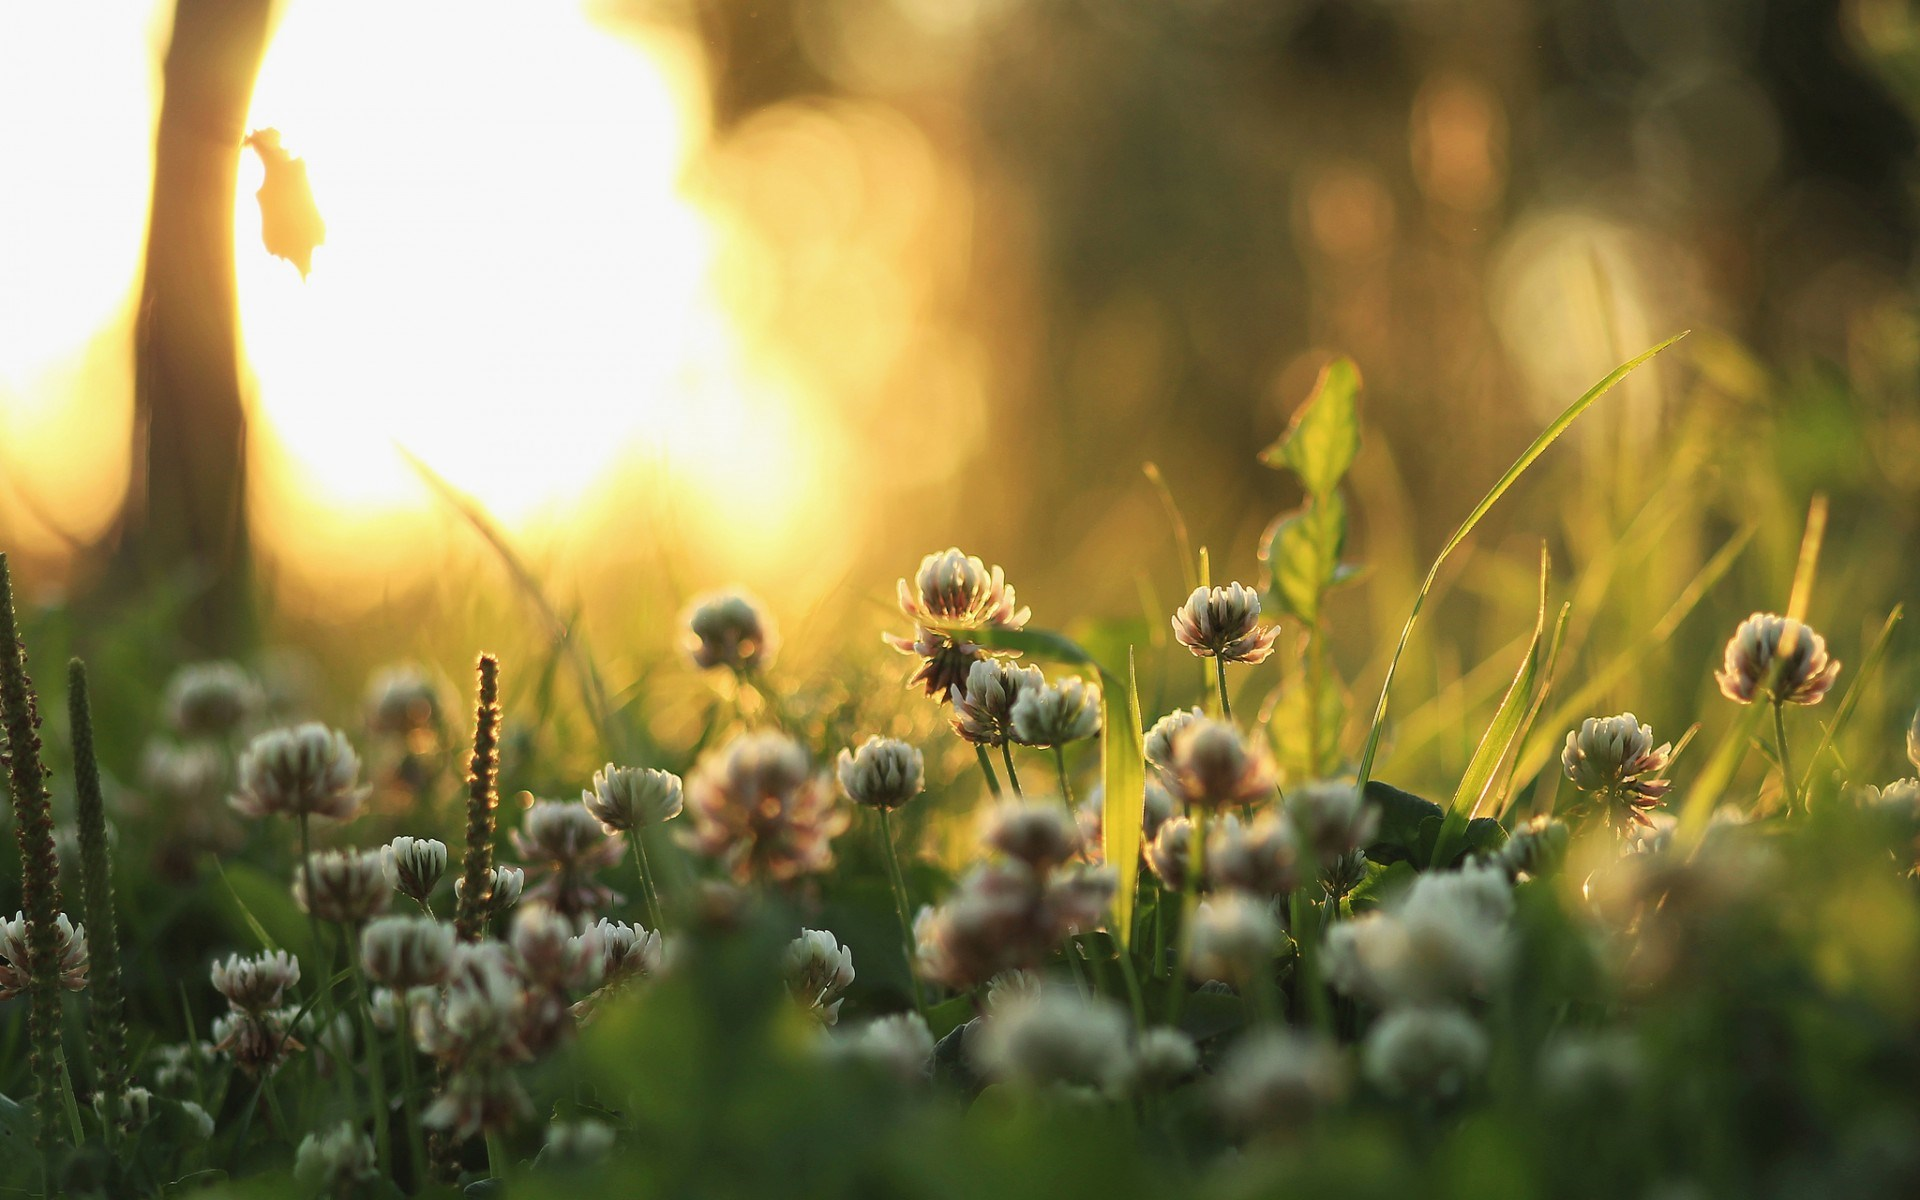 Nature Morning Grass Plants Flowers